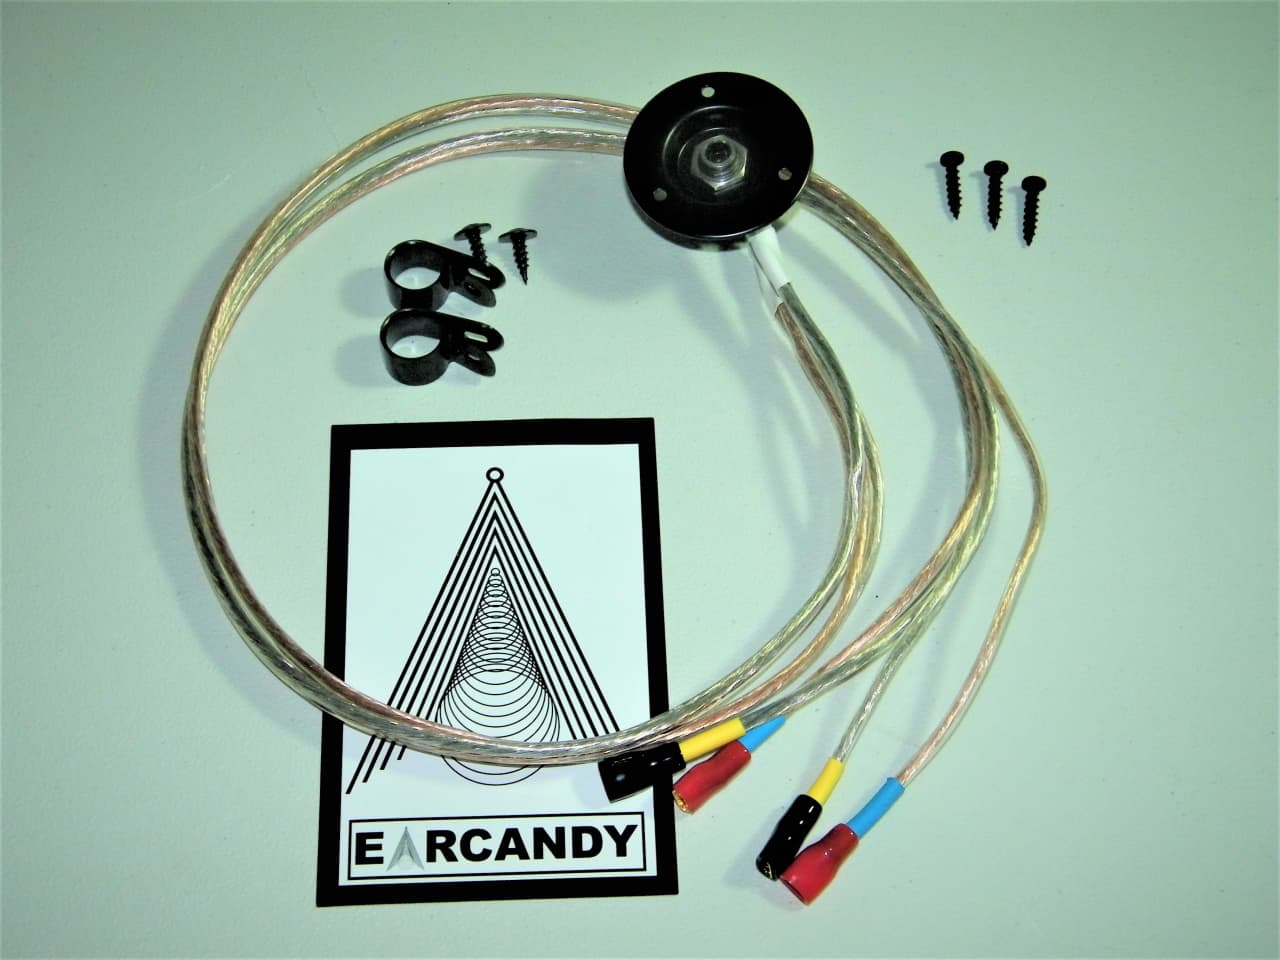 EarCandy 2x12 guitar amp speaker cab parallel wiring harness | Reverb